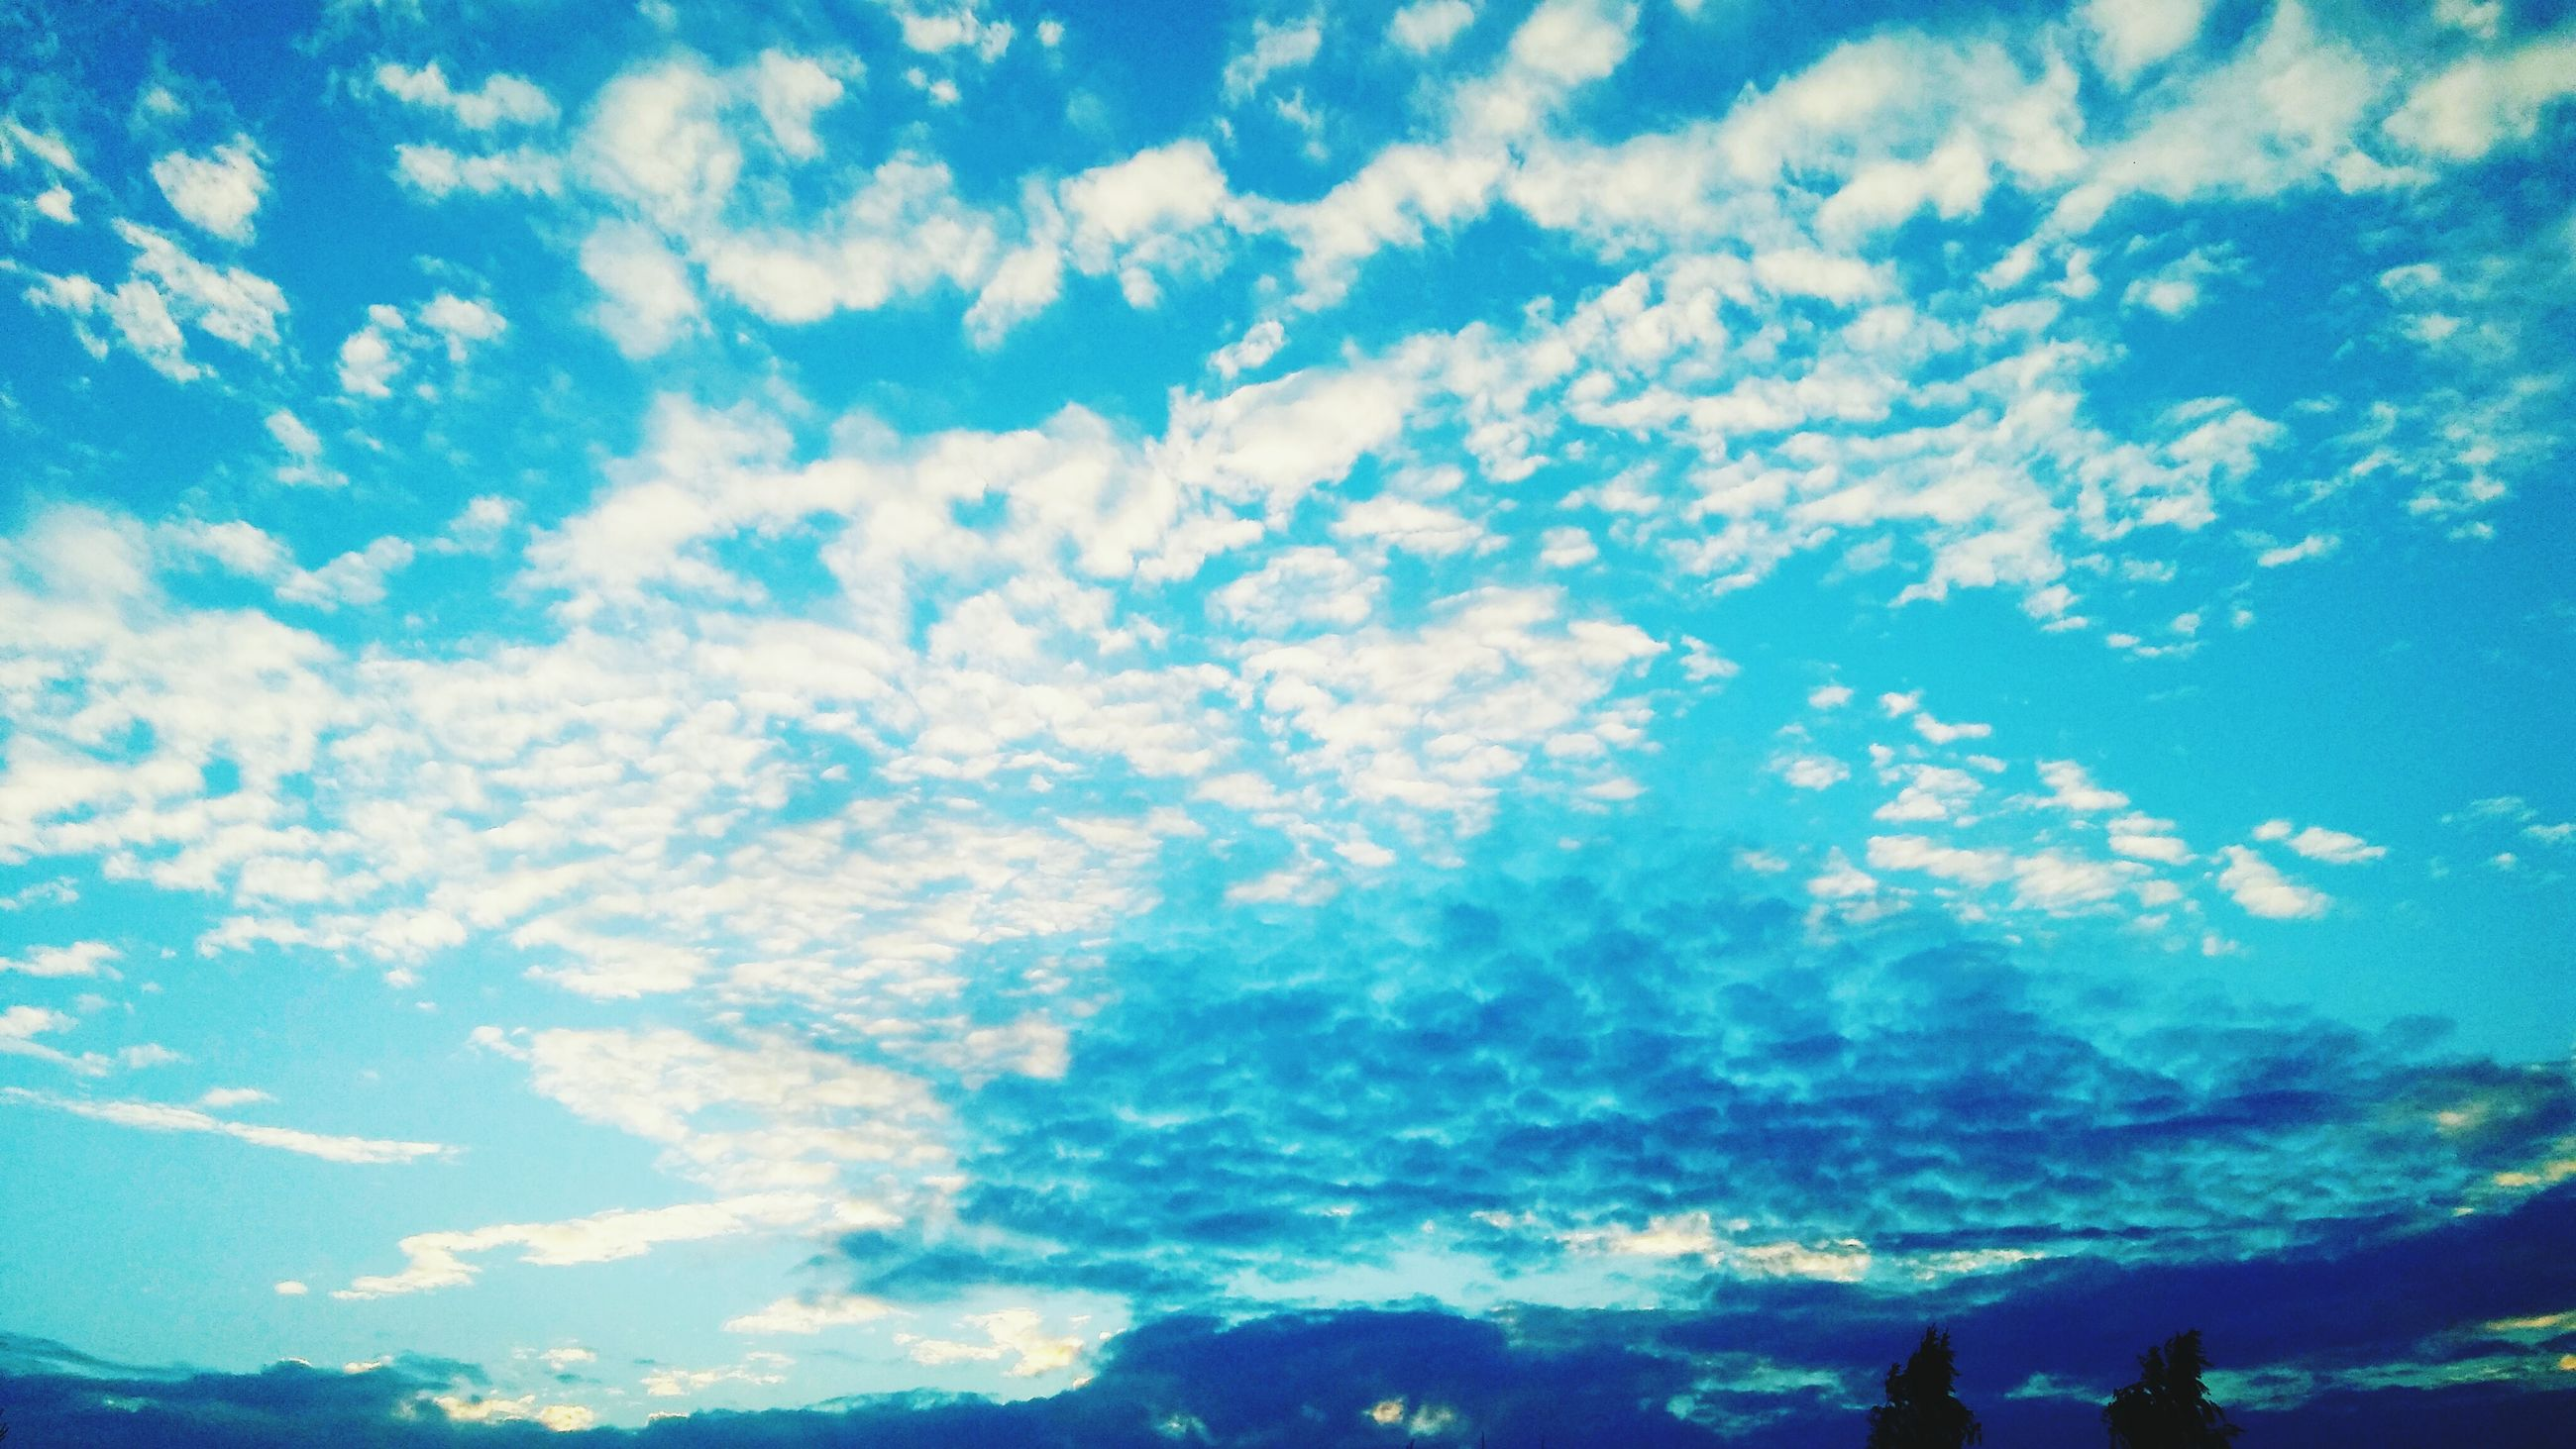 scenics, sky, beauty in nature, tranquility, blue, tranquil scene, low angle view, silhouette, cloud - sky, nature, idyllic, cloud, majestic, cloudscape, day, outdoors, non-urban scene, treetop, dramatic sky, outline, remote, atmosphere, high section, cloudy, no people, meteorology, atmospheric mood